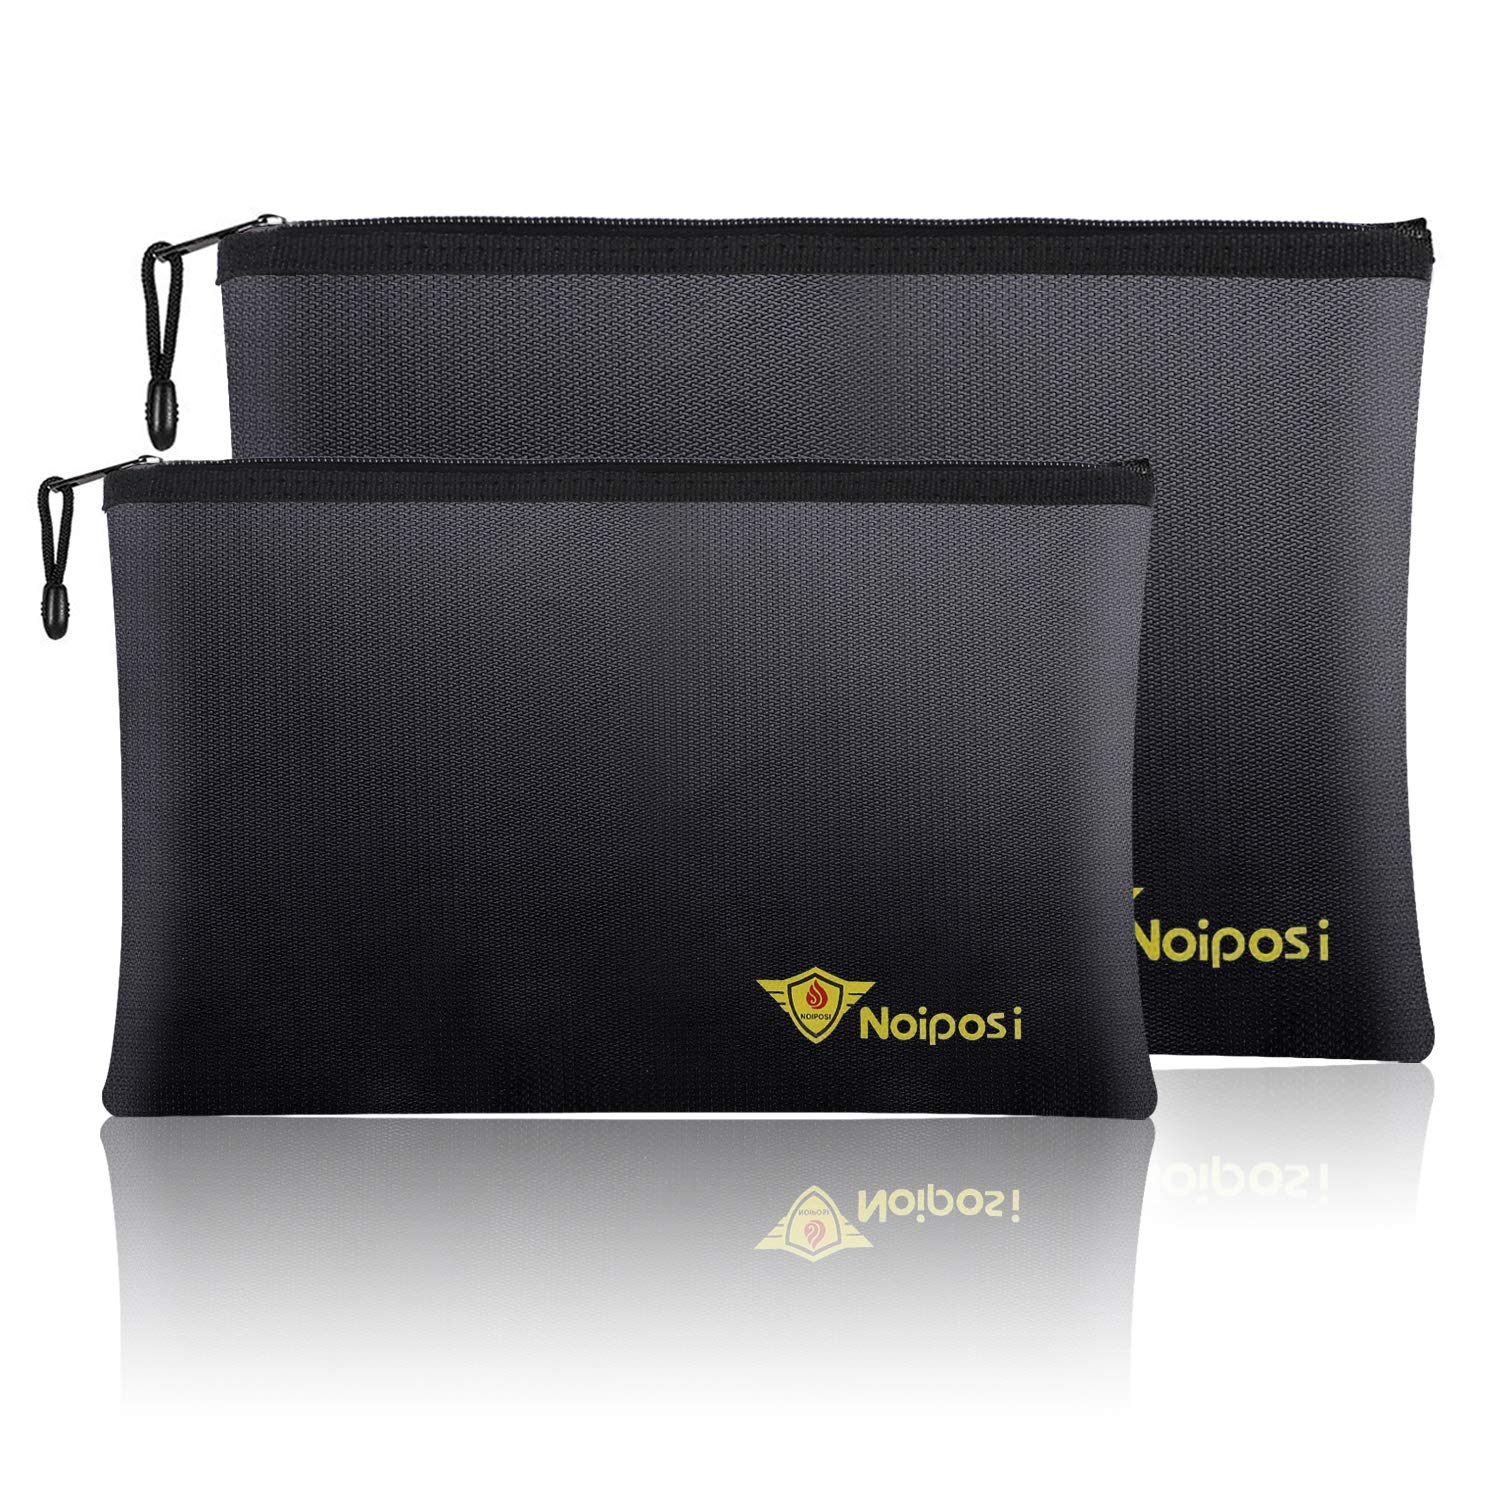 """Noiposi Fireproof Document Bags,13.4""""x9.4"""" Waterproof and Fireproof Bag for Documents and 10.6""""x6.7"""" Fireproof Money Bag with Zipper,Silicone Fire Safe Storage Pouch for Documents,Money and Cash"""